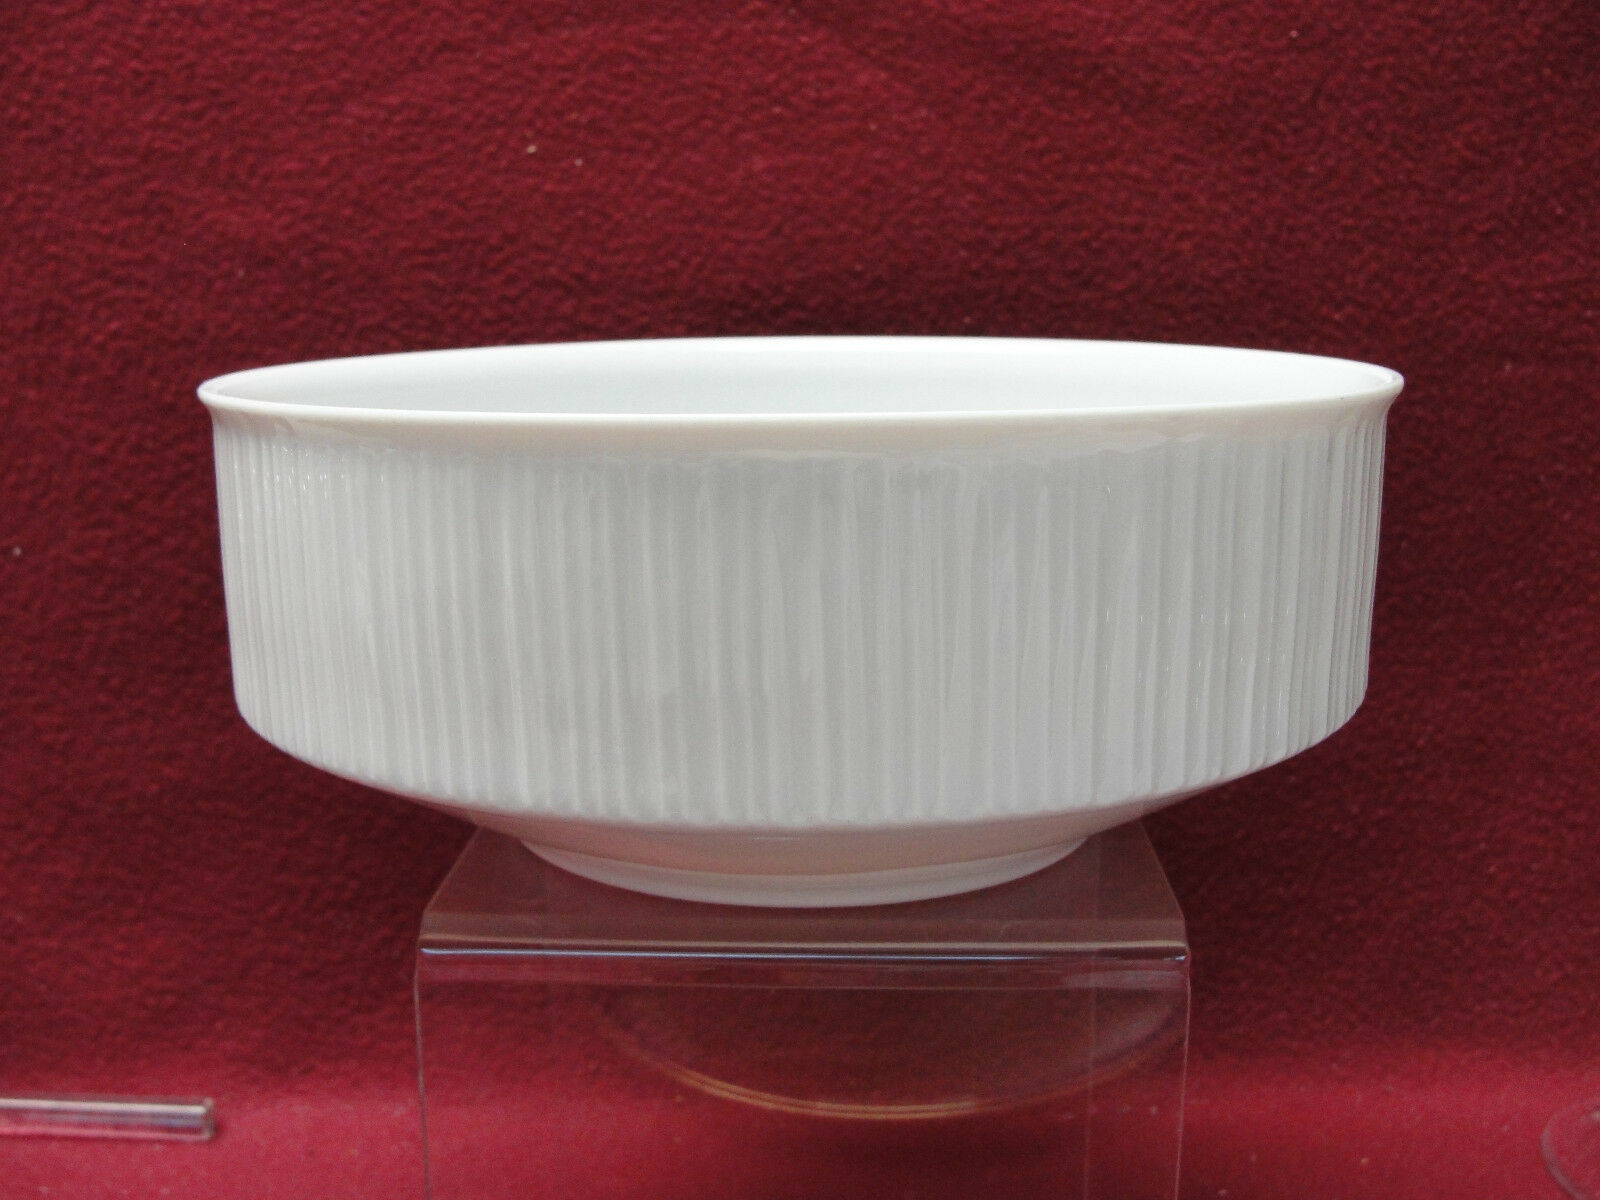 "Primary image for ROSENTHAL Studio Line China VARIATIONS by Tapio Wirkkala - 7"" SERVING BOWL"